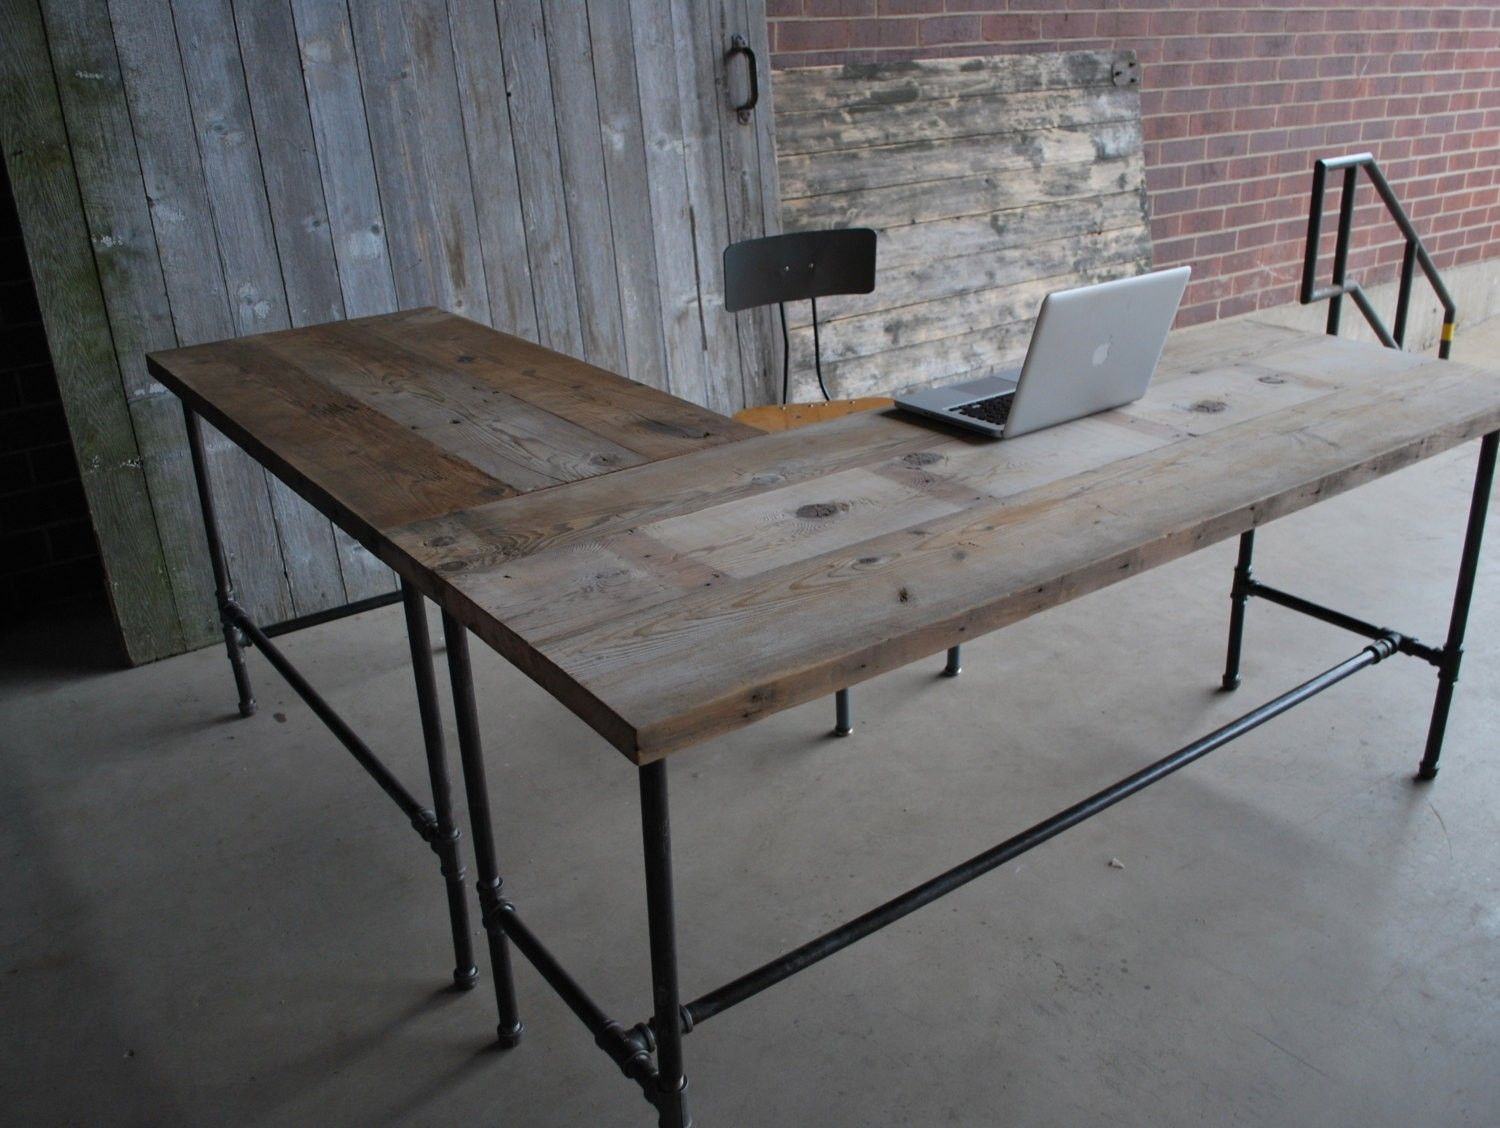 Rustic L Shaped Unfinish Wooden Desk With Steel Pipe Table Legs And  Stretcher, Popular Rustic